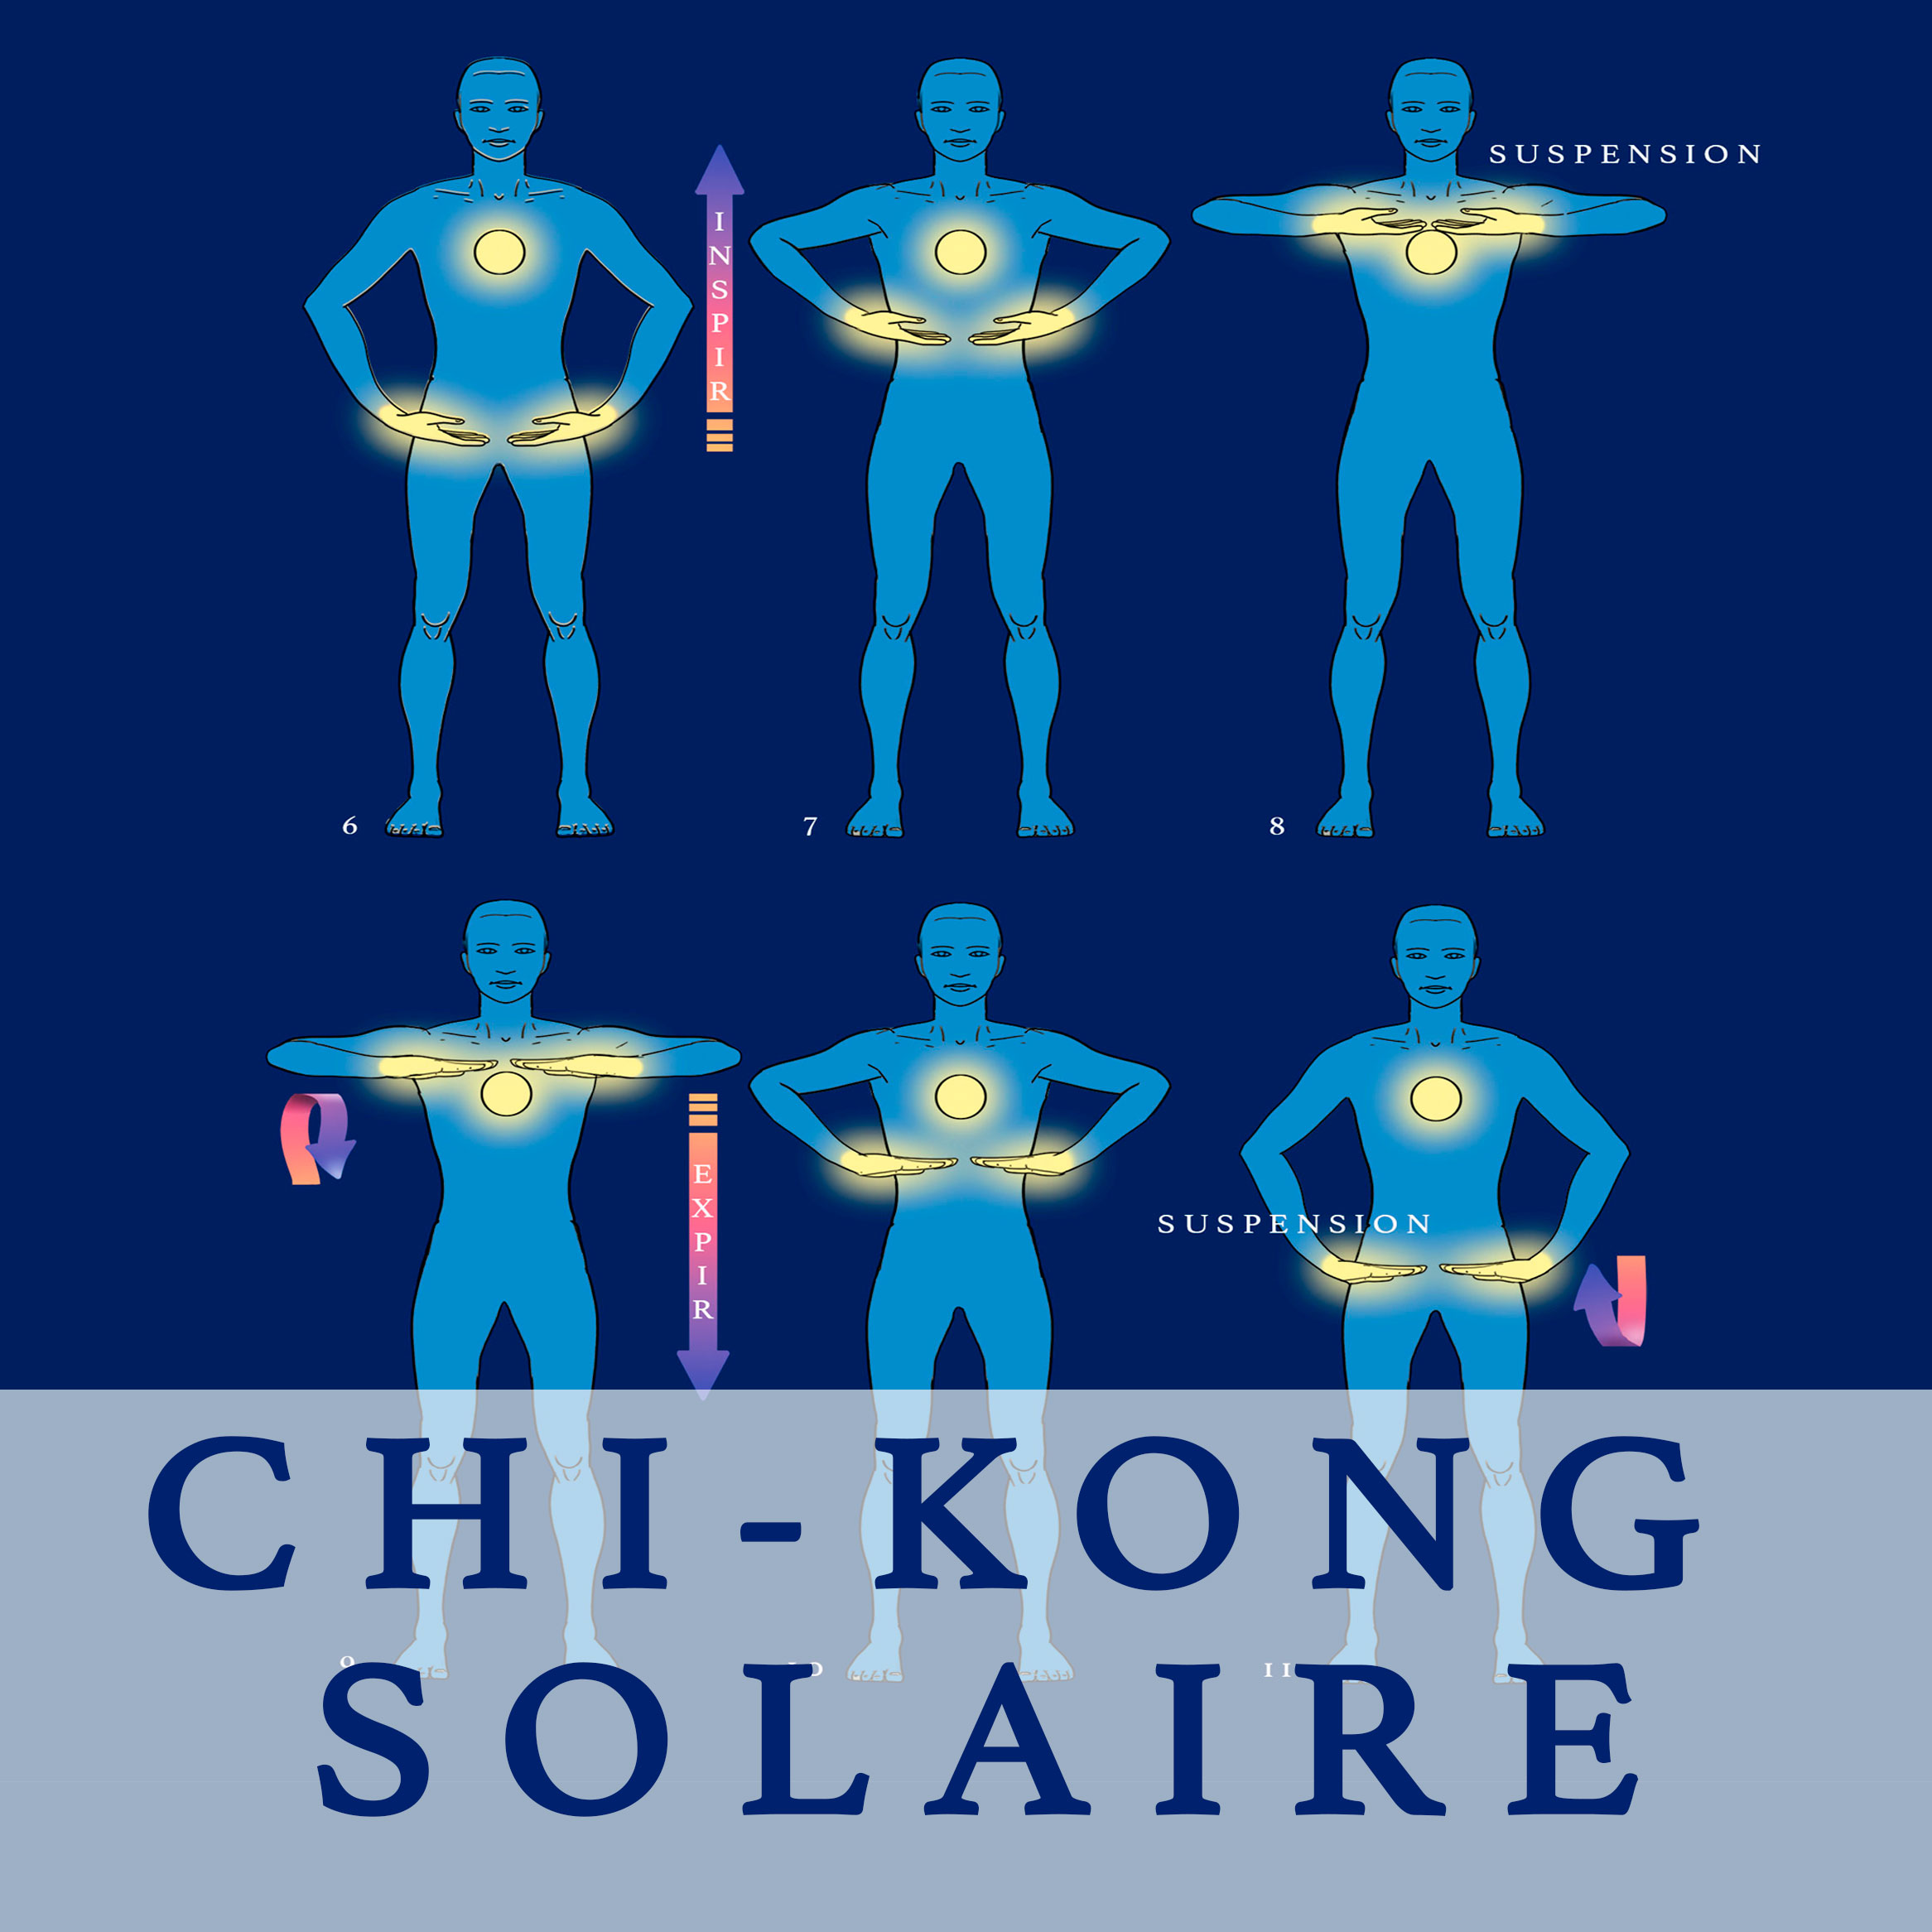 Description du Chi-Kong solaire